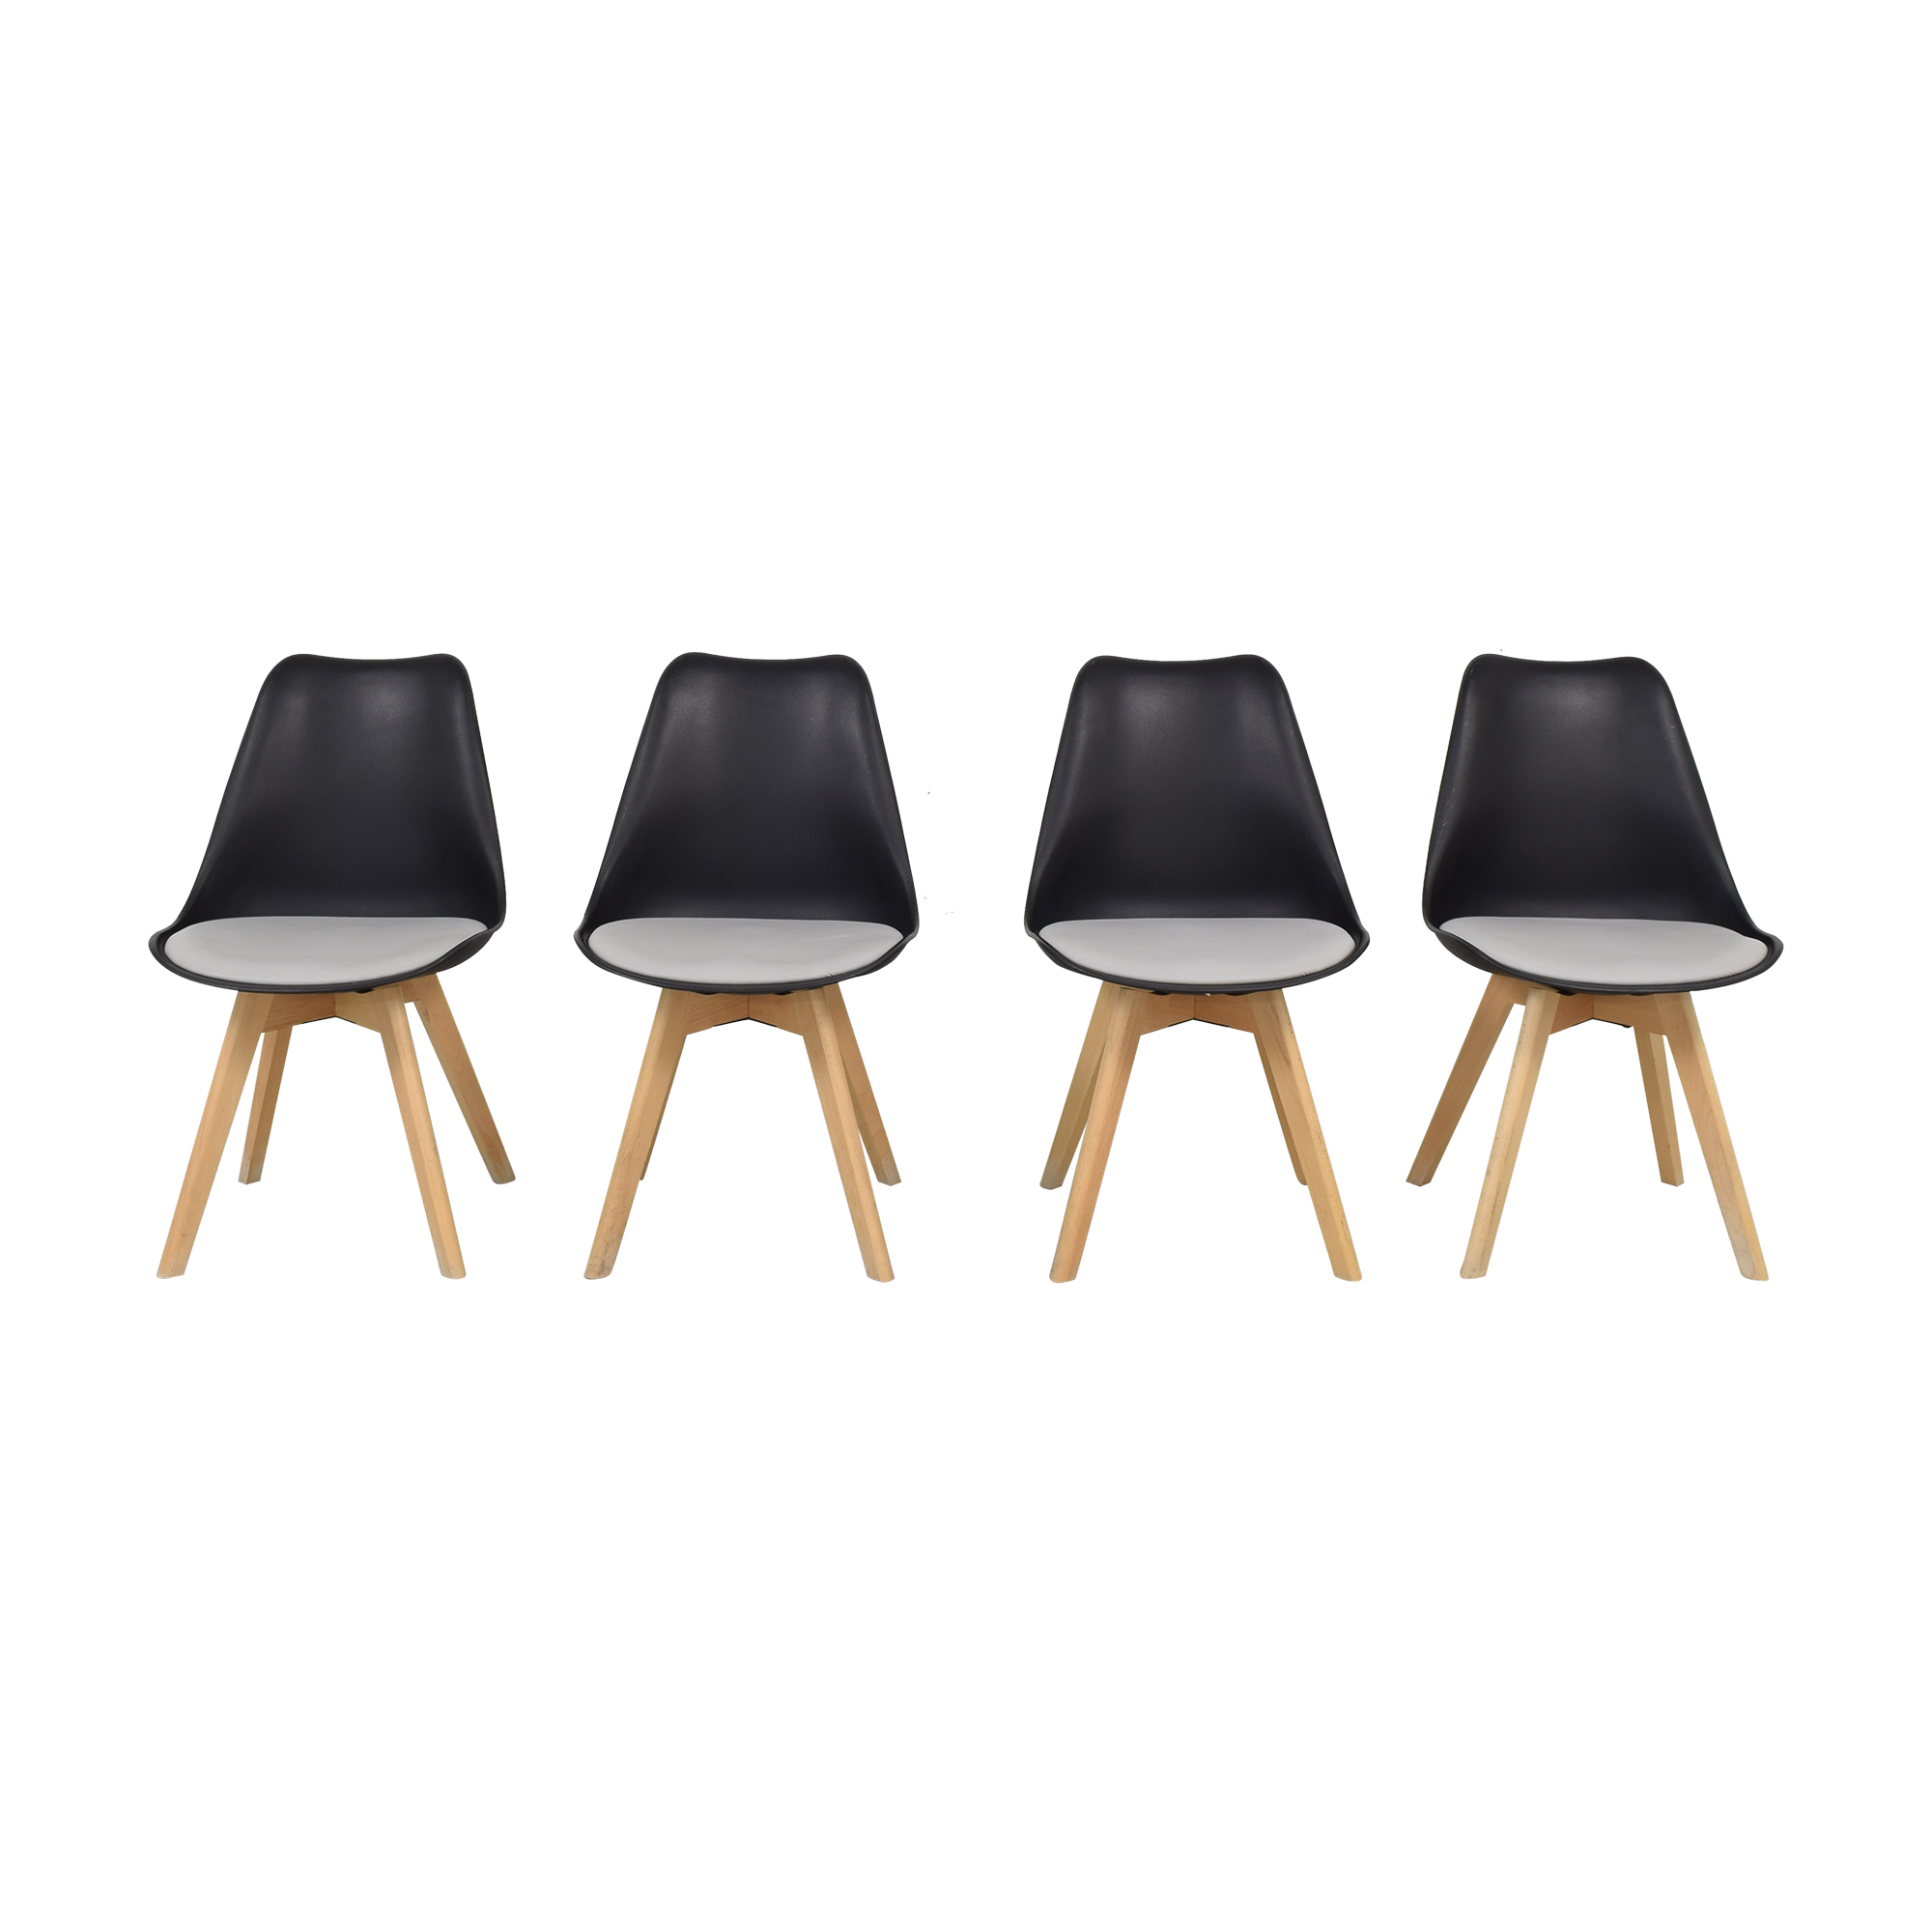 Black Molded Plastic Chairs with Wooden Legs discount